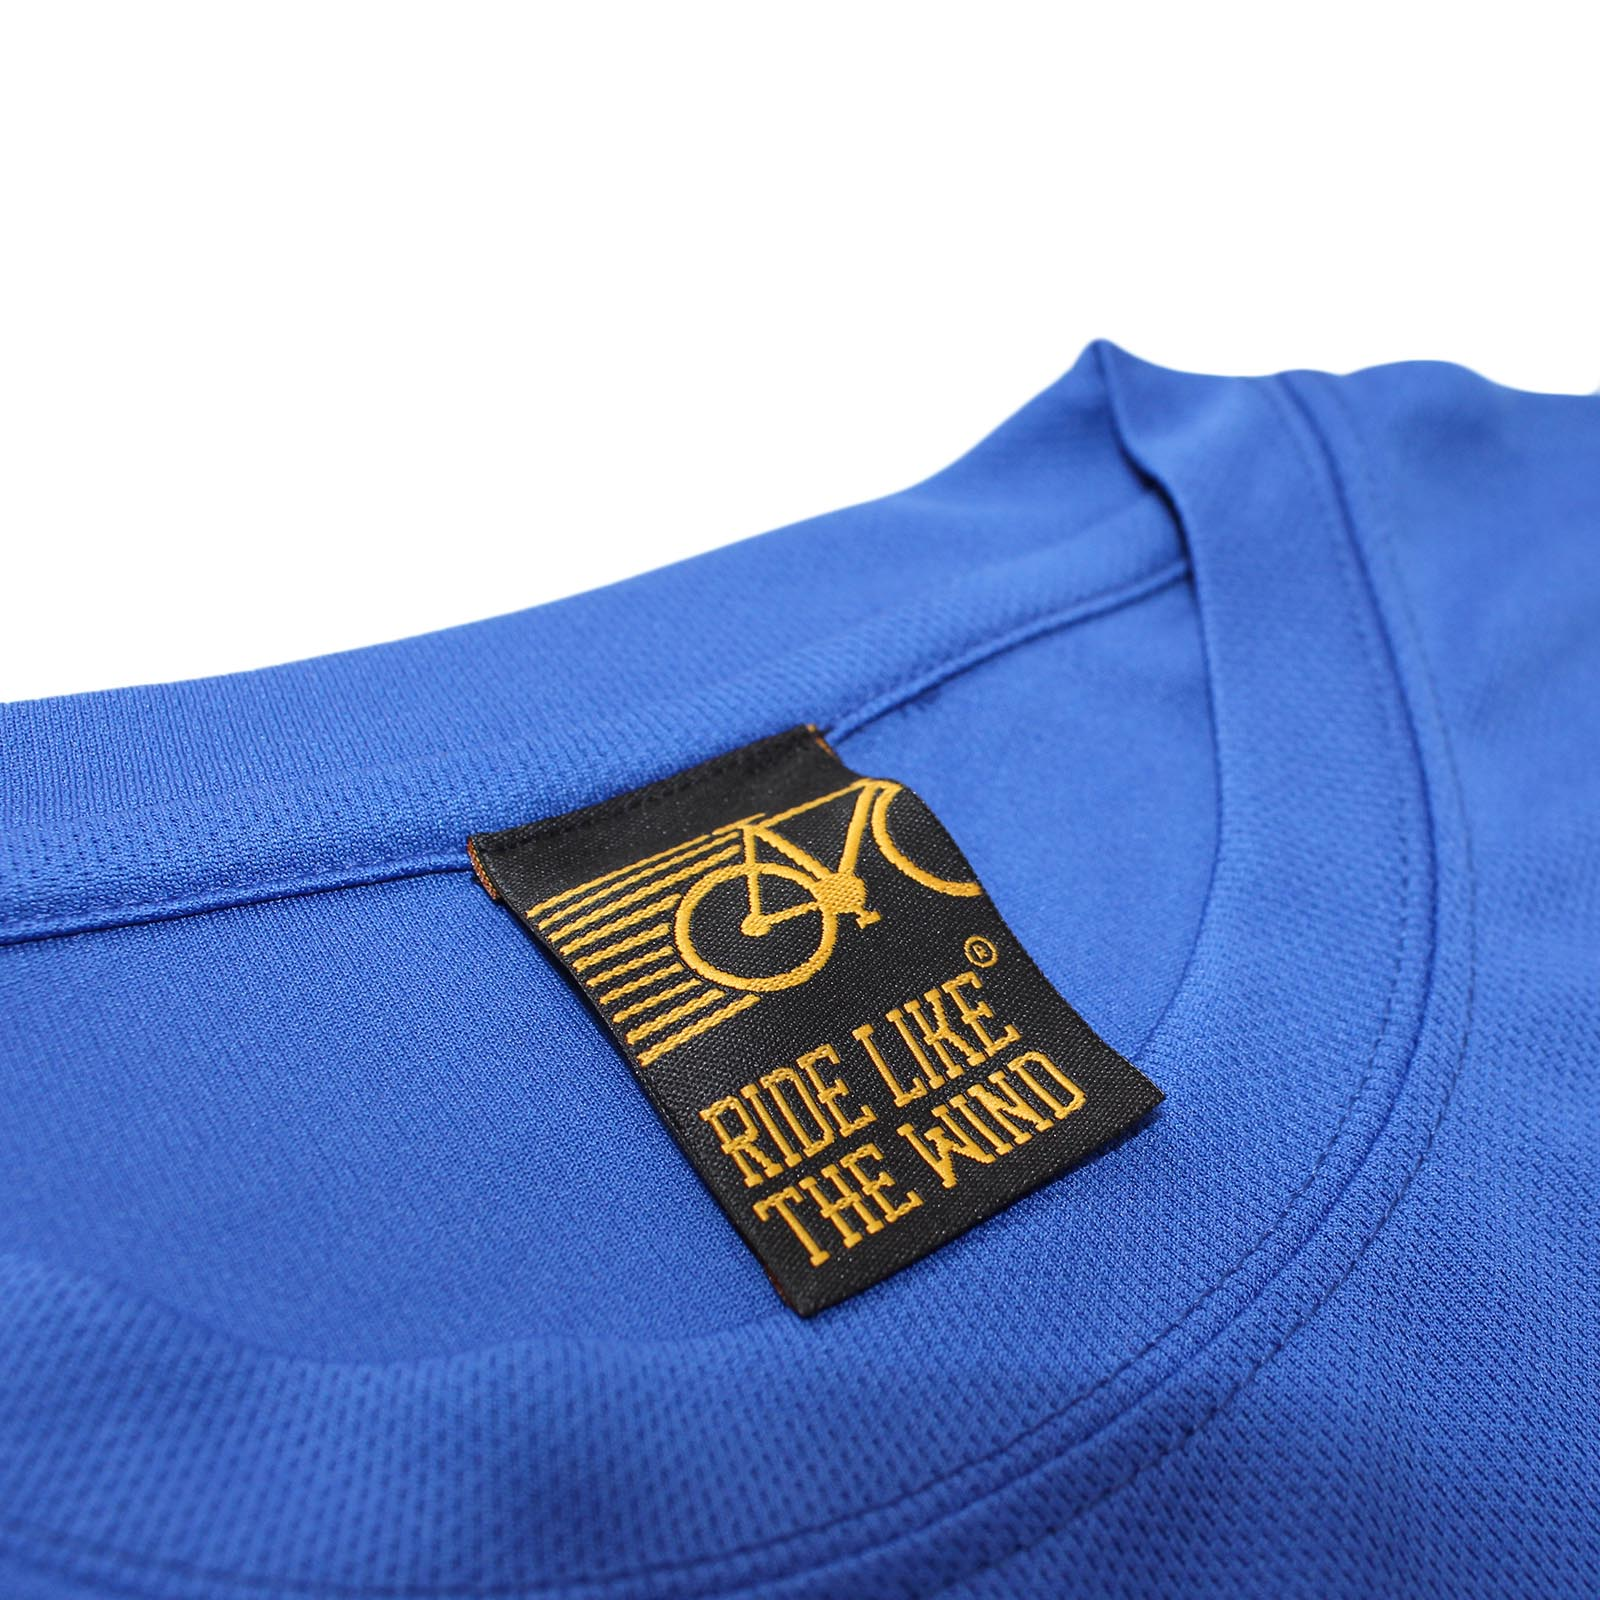 One Gear All Year Breathable Sports T-SHIRT Cycling Birthday Gift Present Bike